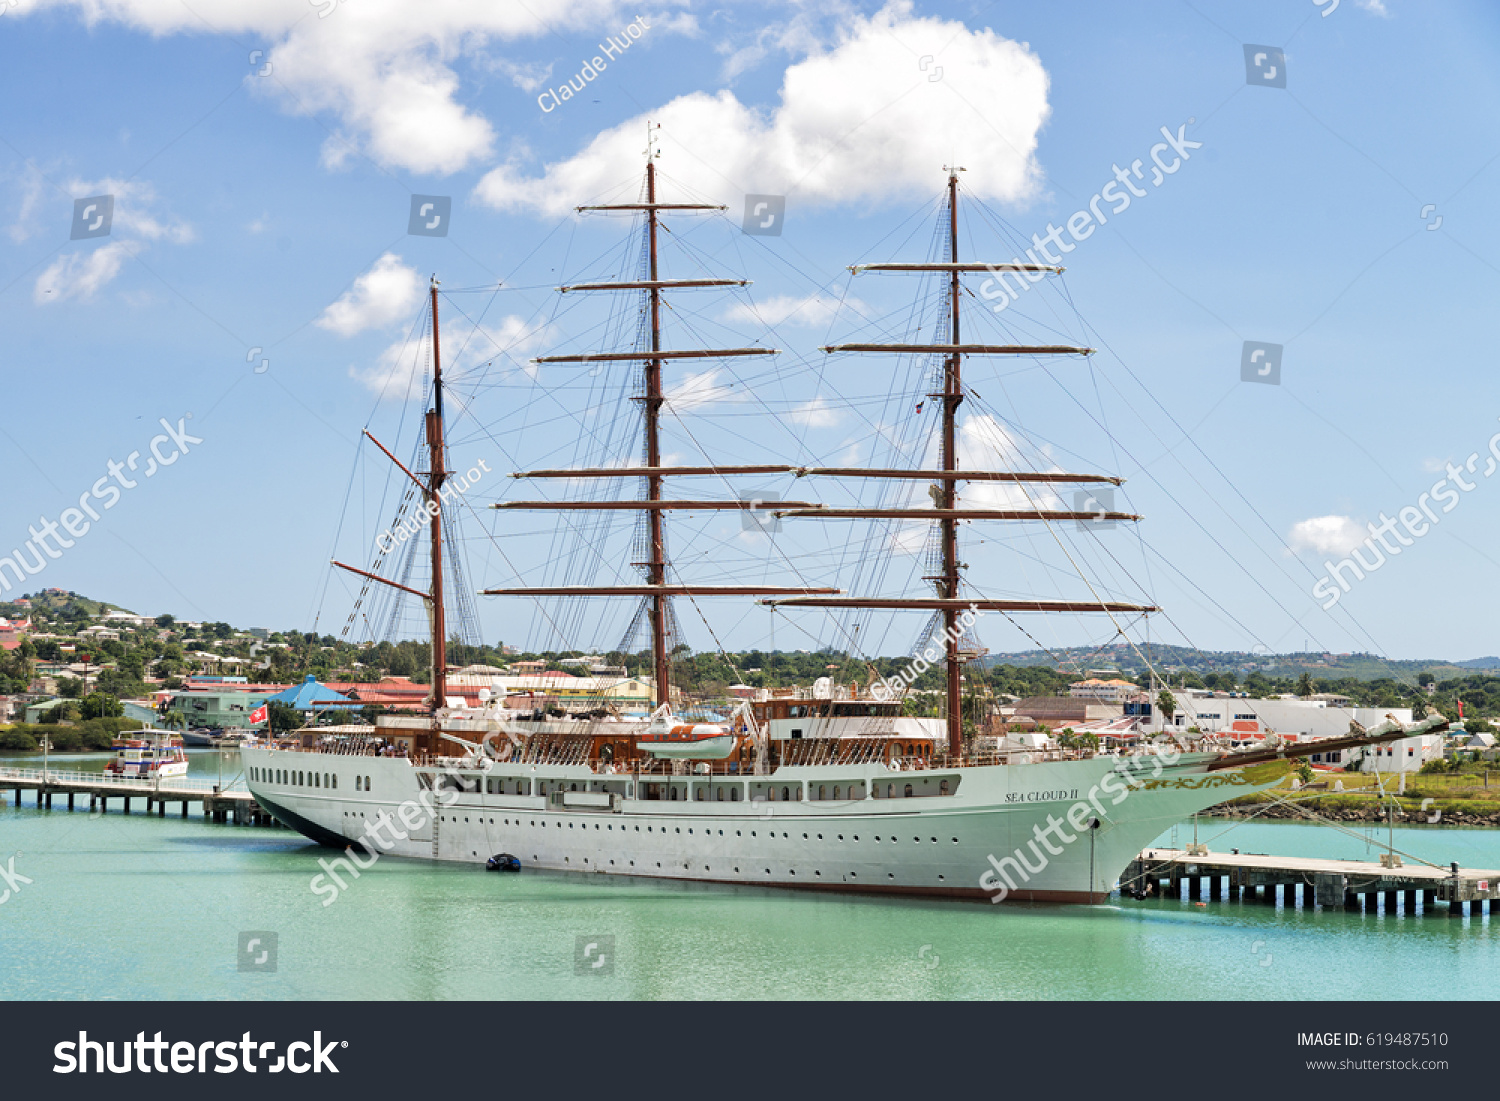 ST. JOHN'S, ANTIGUA - JANUARY 25, 2017: The Sea Cloud II is docked at the Nevis Street pier in St. John's. It is a large barque built as a cruise ship and operated by Sea Cloud Cruises GmbH, Germany.